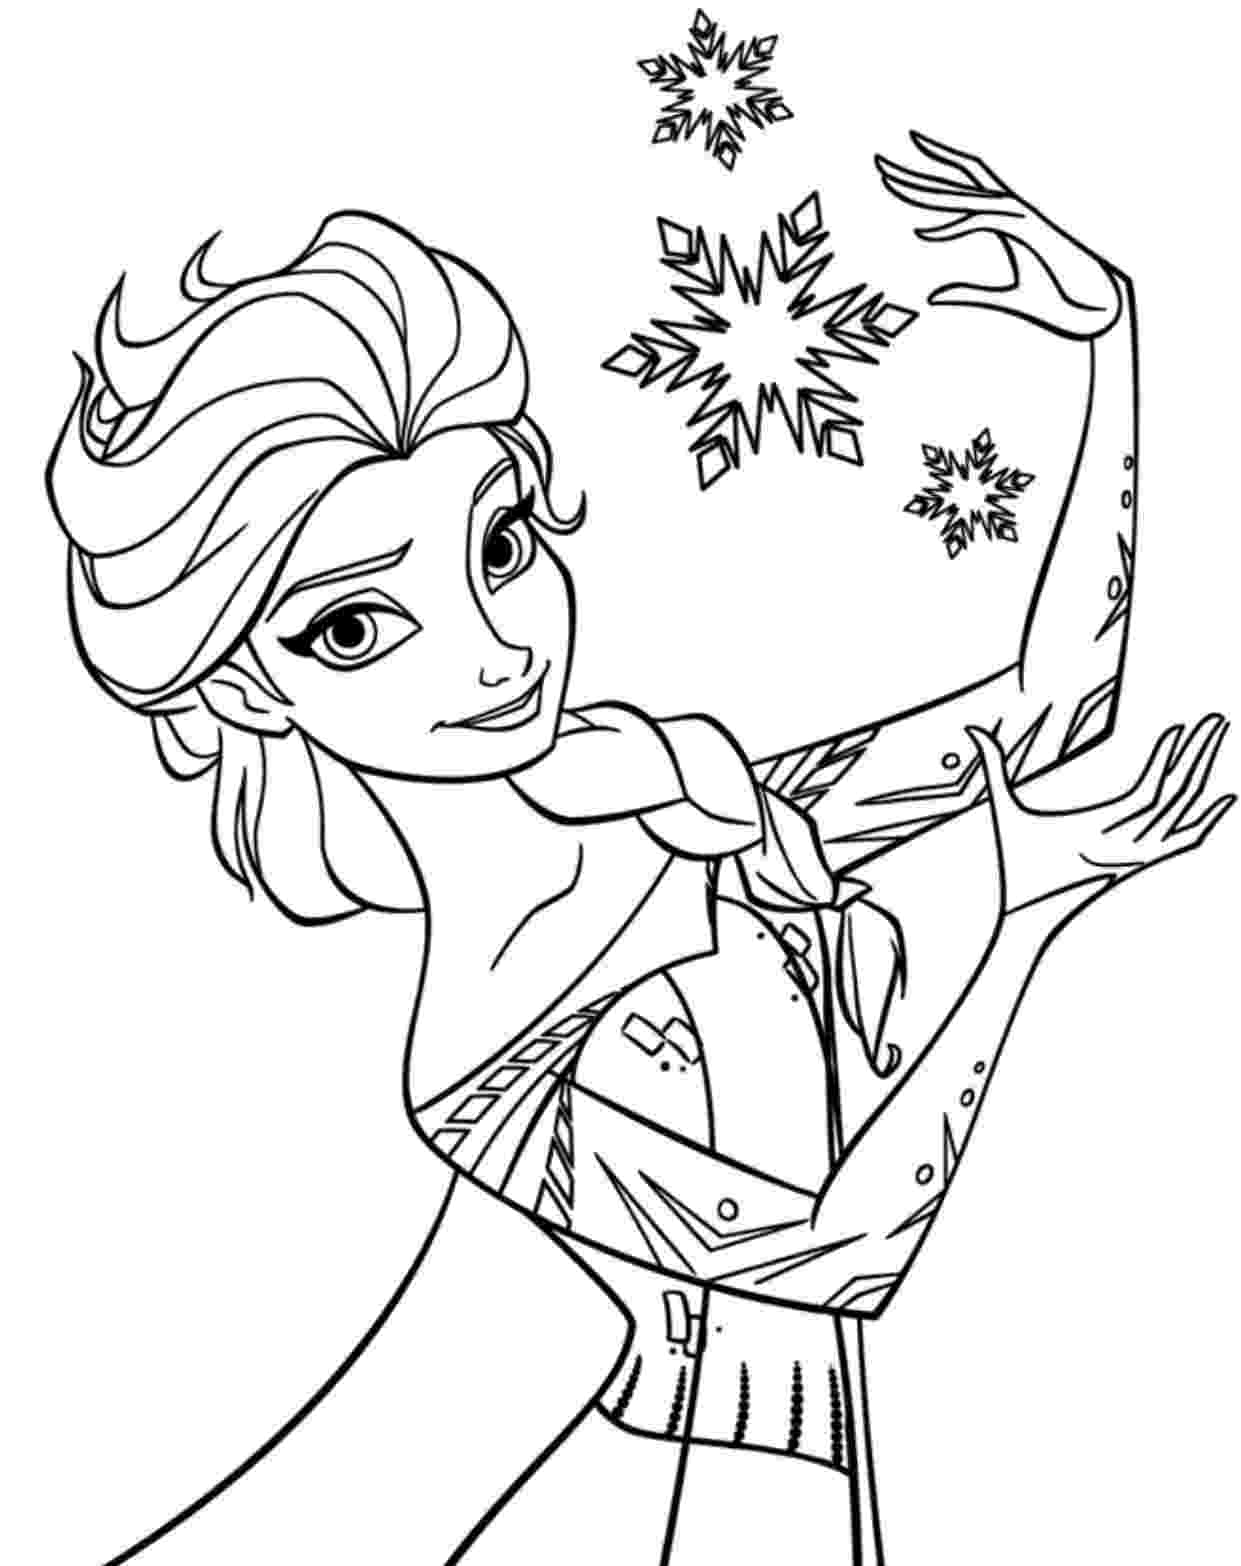 printable coloring pages of elsa from frozen free printable elsa coloring pages for kids best from coloring printable elsa pages of frozen